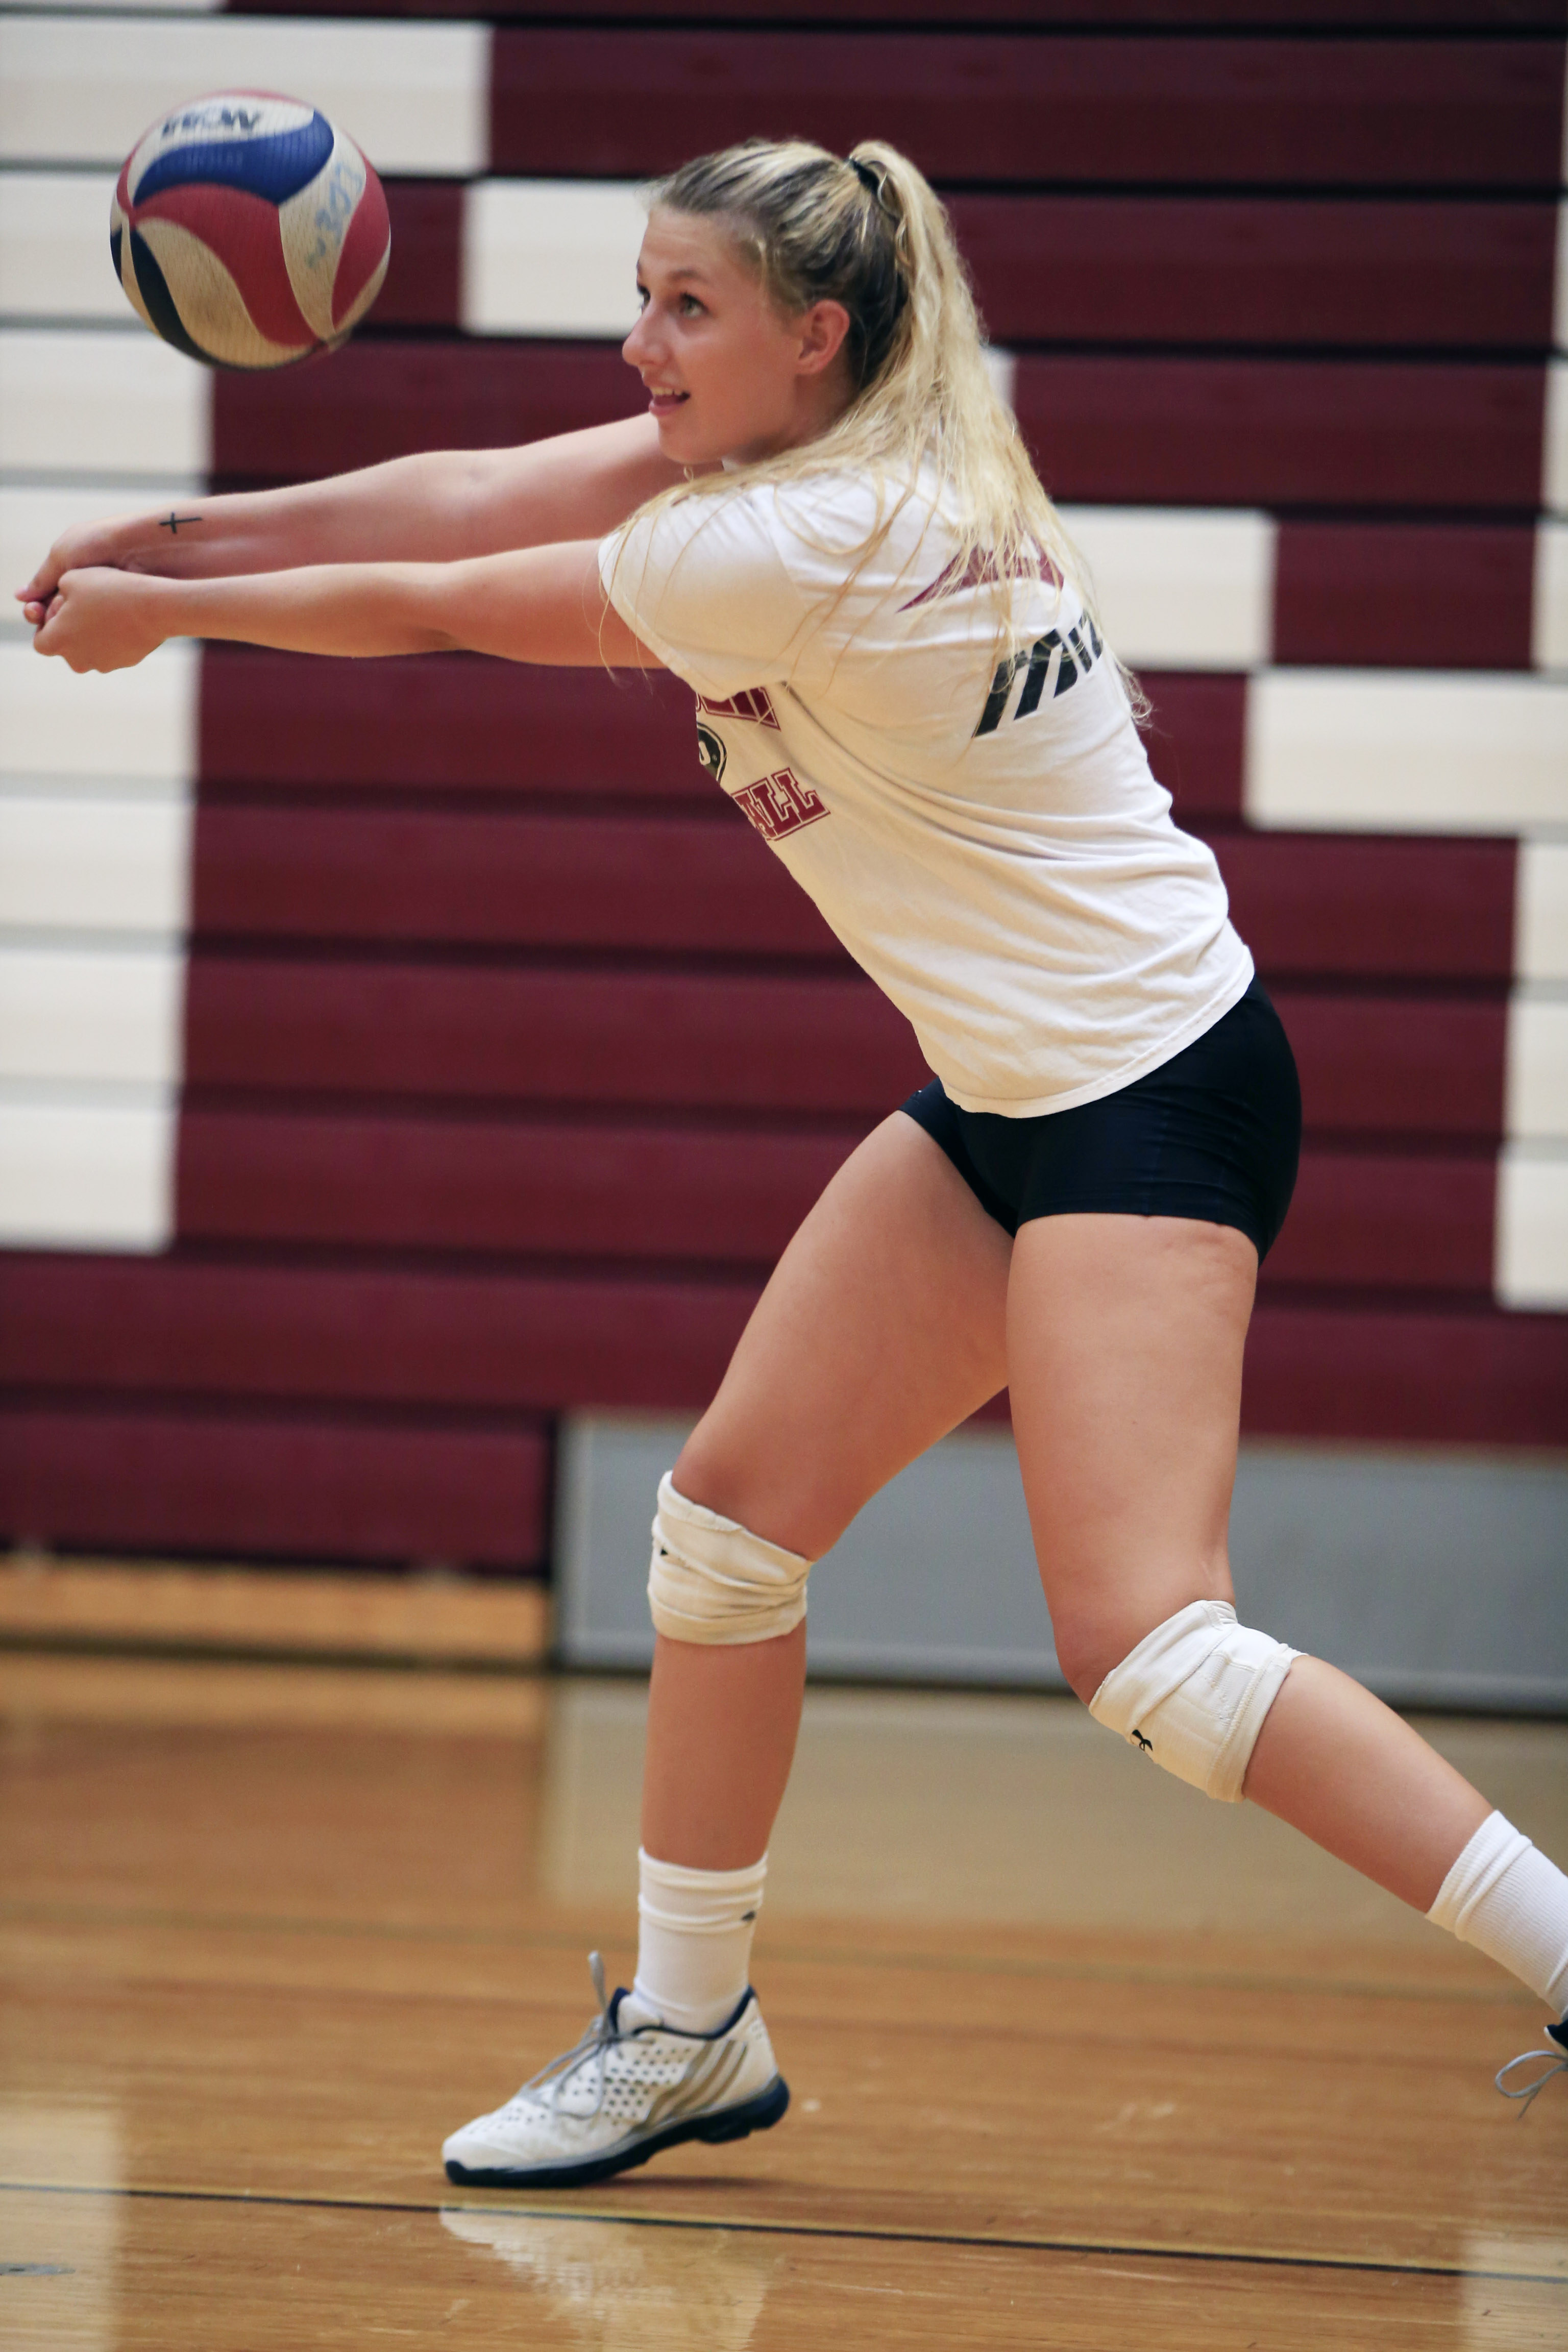 Eden volleybal player Samantha Burgio during practice at High School on Thursday, Aug. 18, 2016. (Harry Scull Jr./Buffalo News)